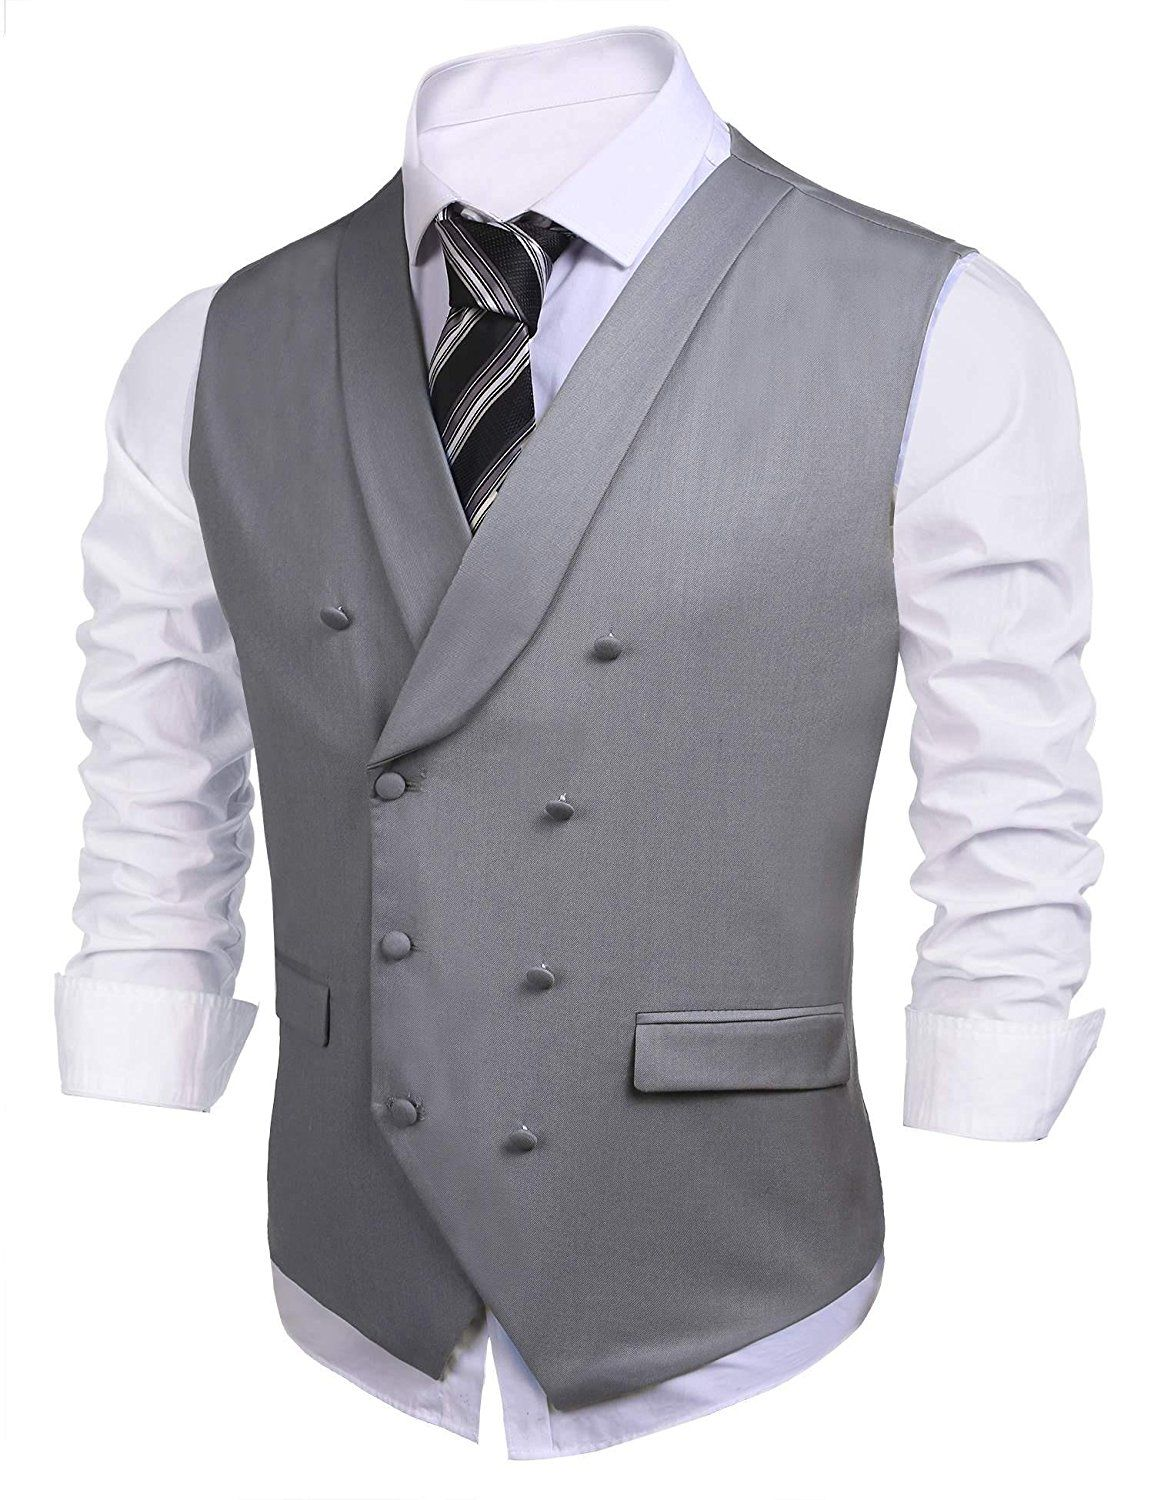 Coofandy Men Slim Fit Solid Vest Double Breasted Dress Suit Waistcoat At Amazon Men S Clothing Stor Fashion Suits For Men Mens Fashion Suits Stylish Waistcoats